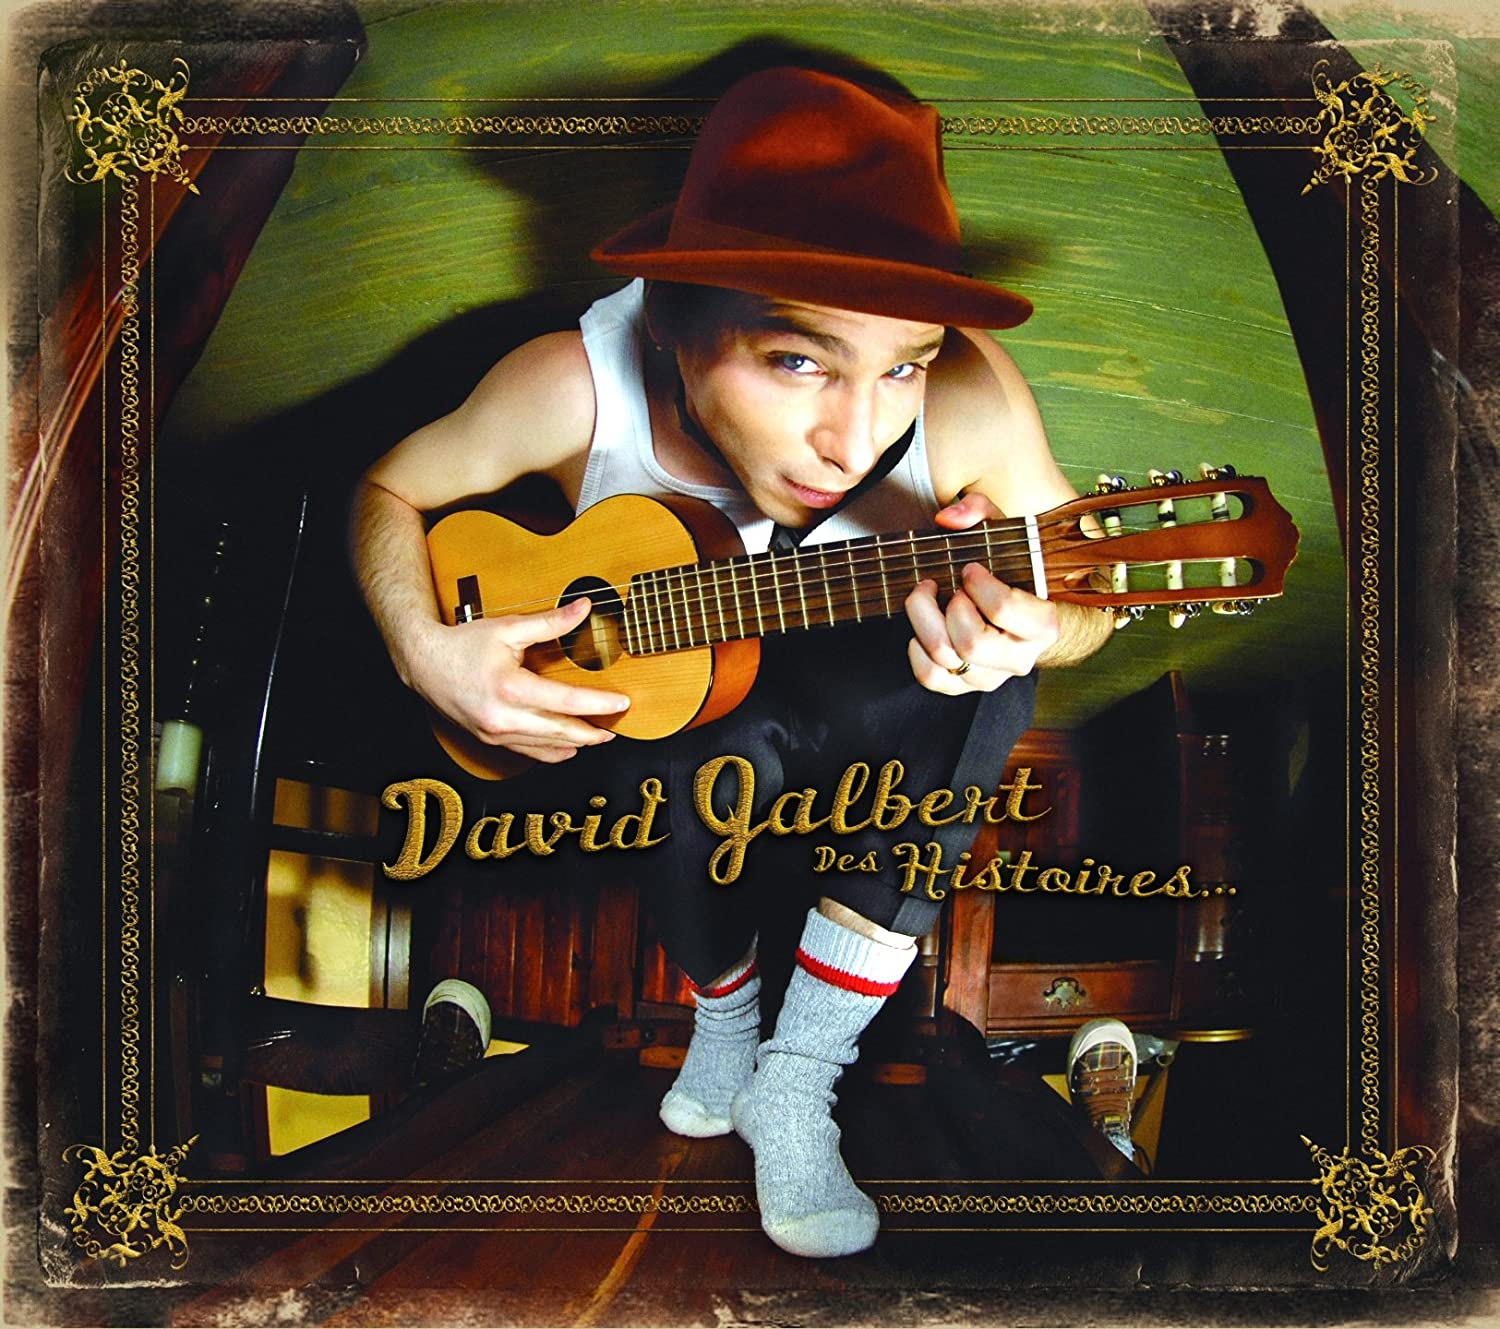 Des Histoires David Jalbert Unidisc Music Francais World Music